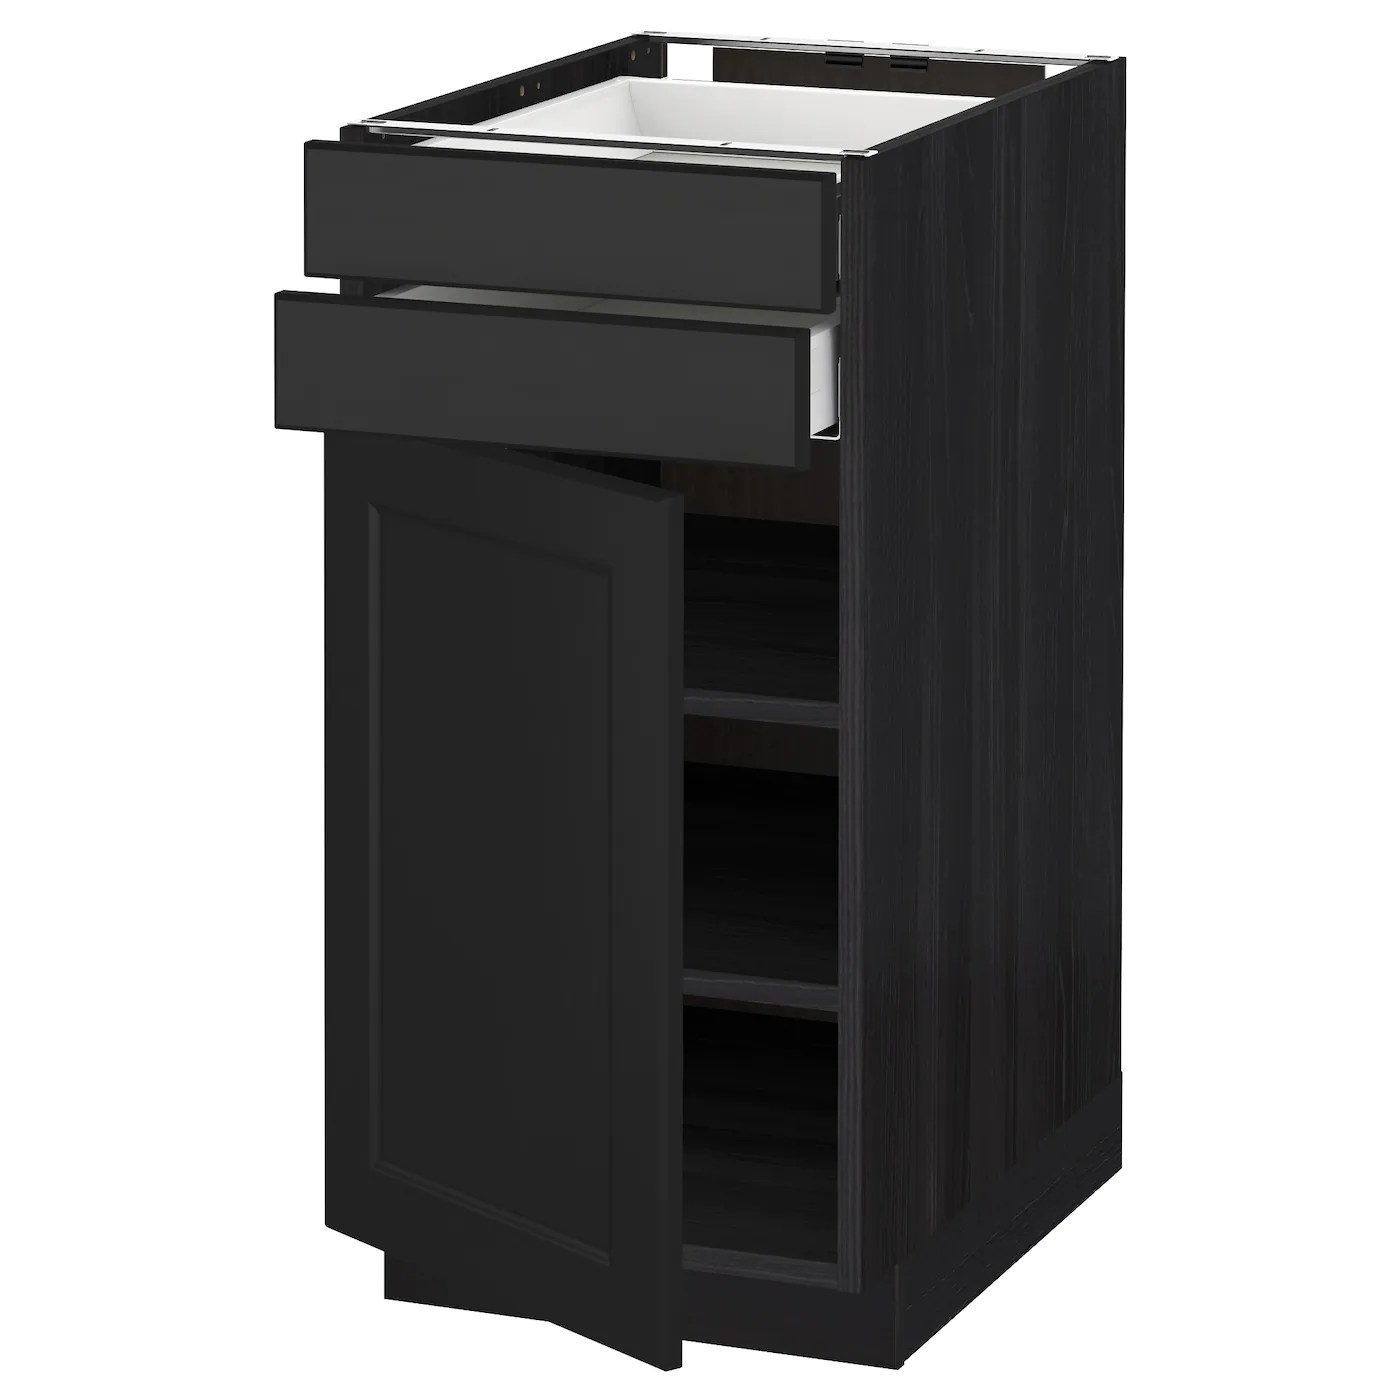 2 drawer base kitchen cabinet modern pulls metod maximera w door drawers black laxarby